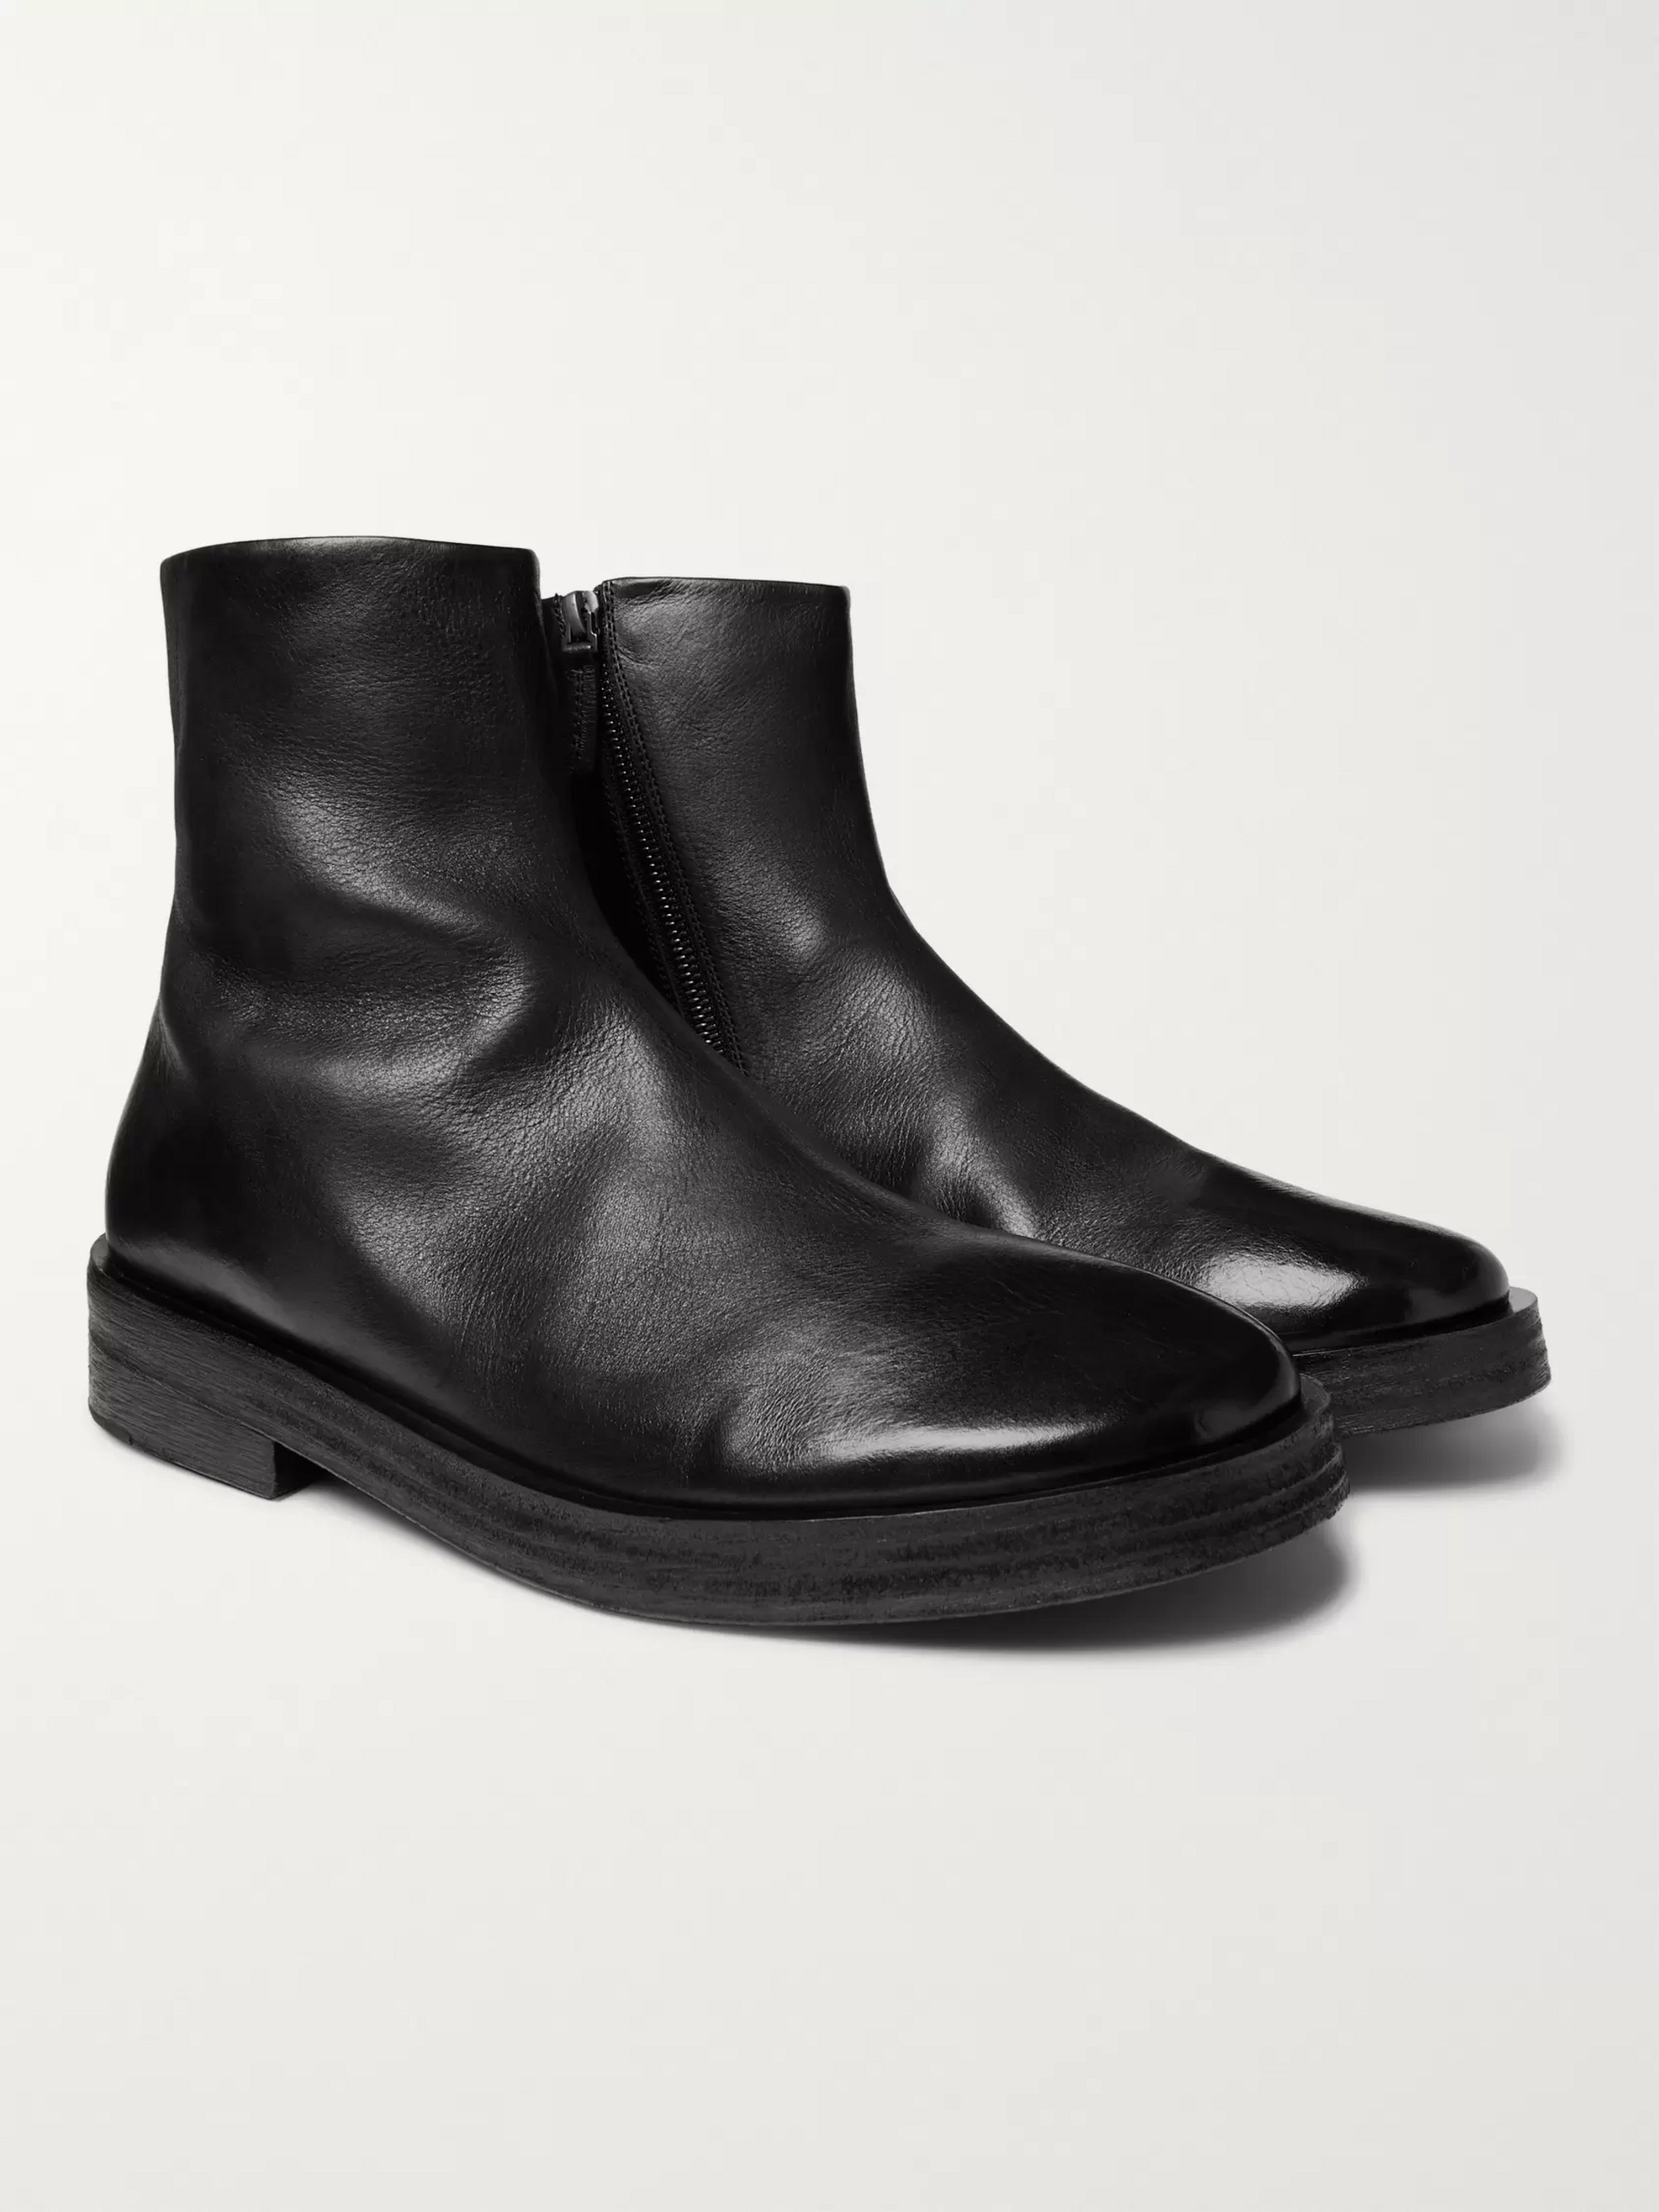 Marsell Listone Burnished-Leather Chelsea Boots